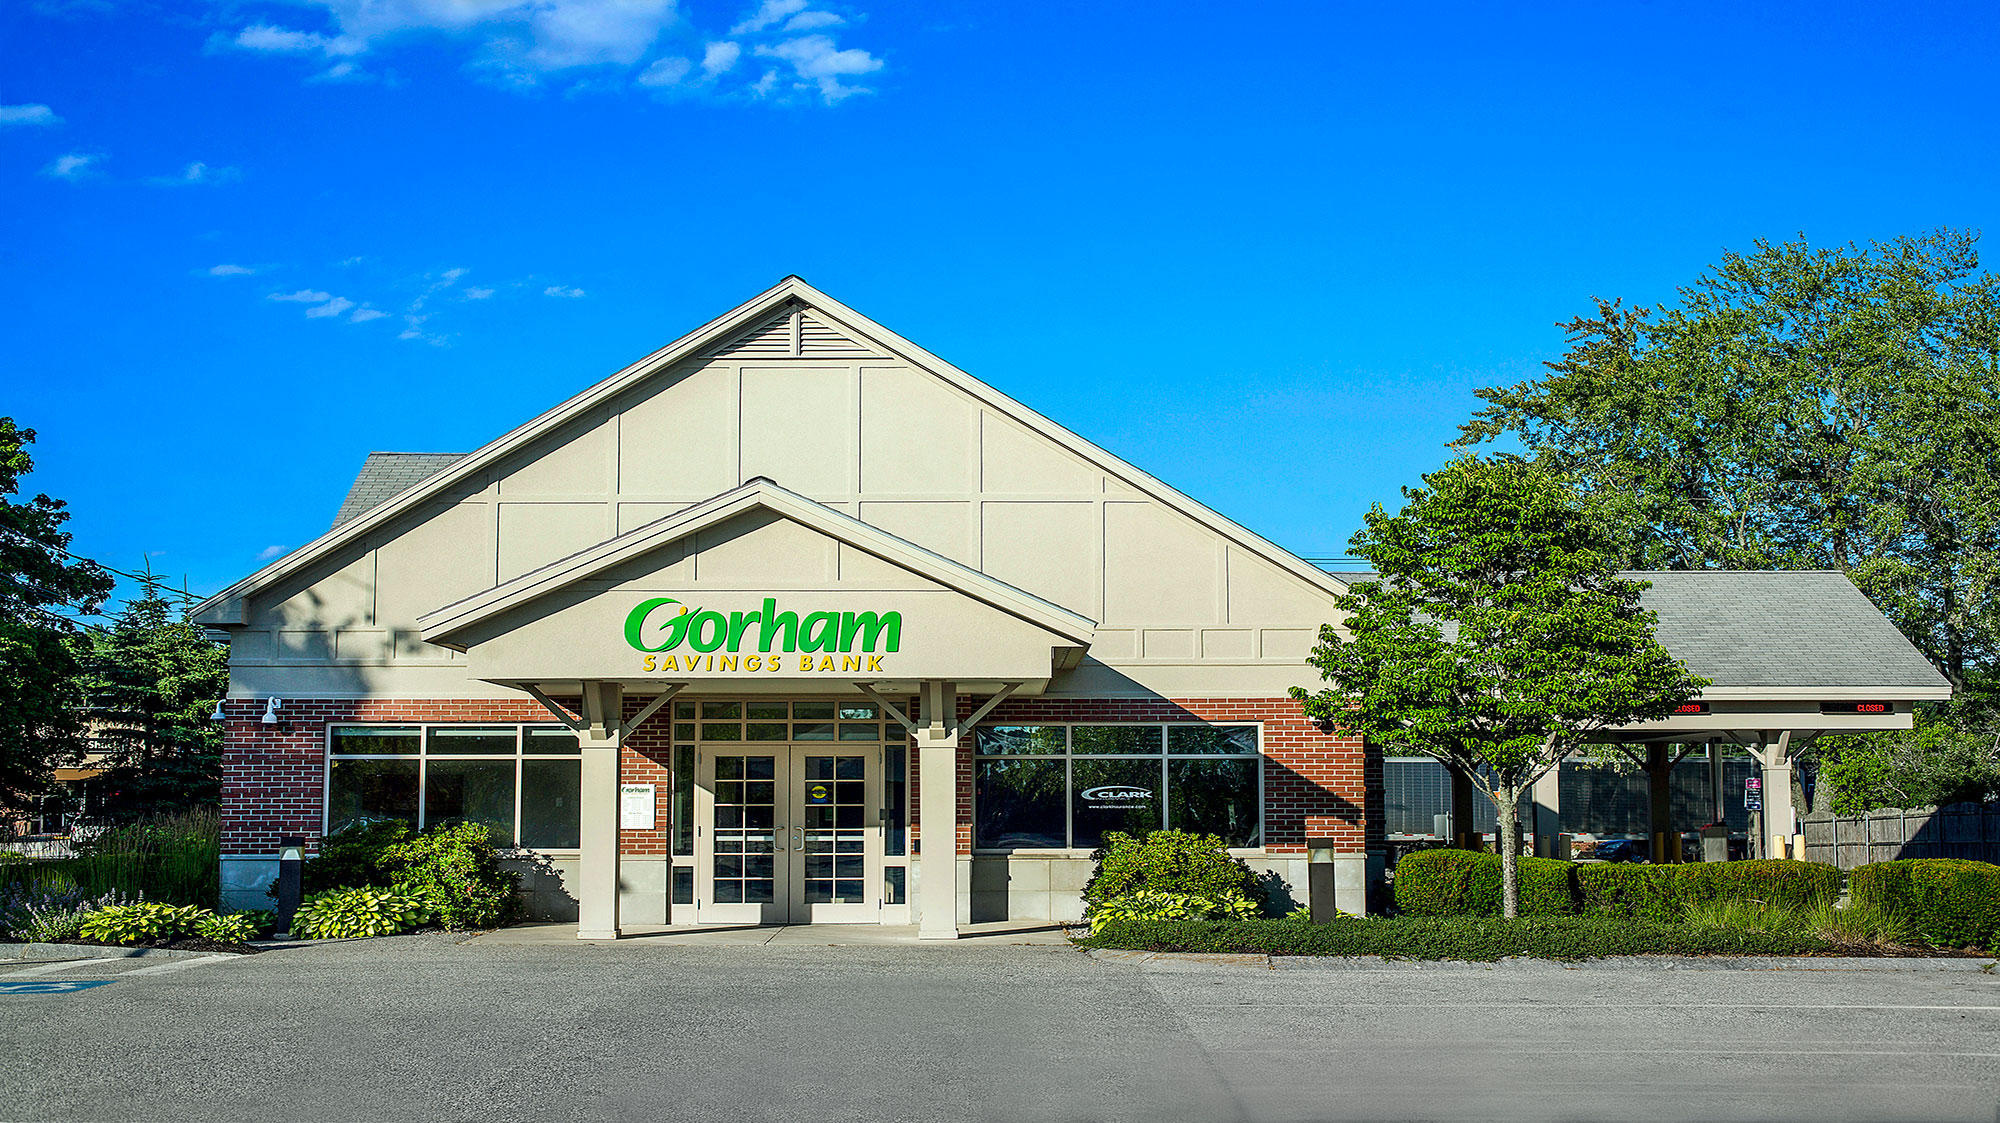 Gorham Savings Bank Windham Branch